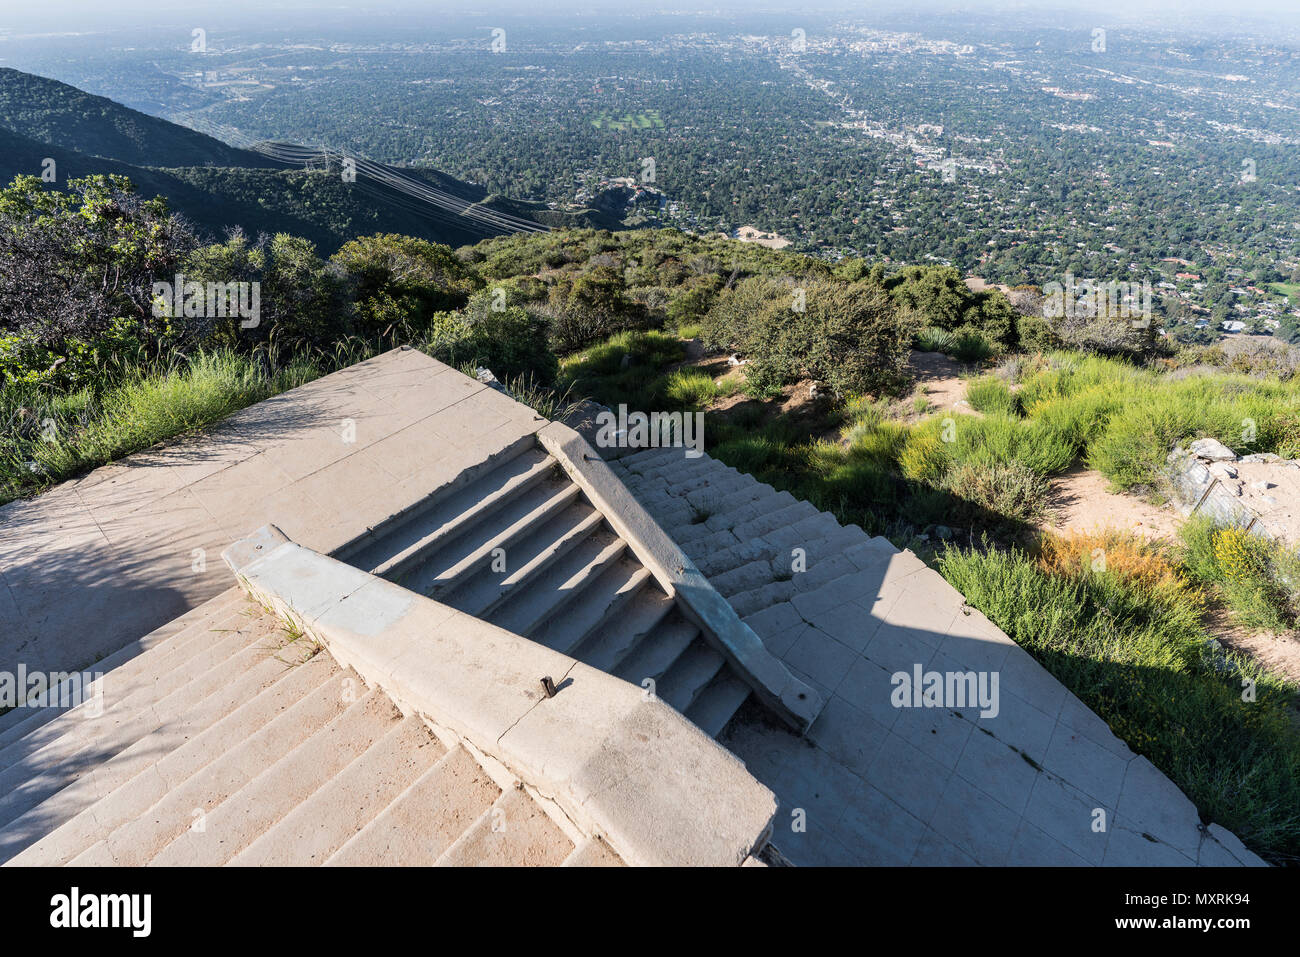 Historic incline railway stairway ruins on top of Echo Mtn in the Angeles National Forest above Pasadena and Los Angeles, California. - Stock Image